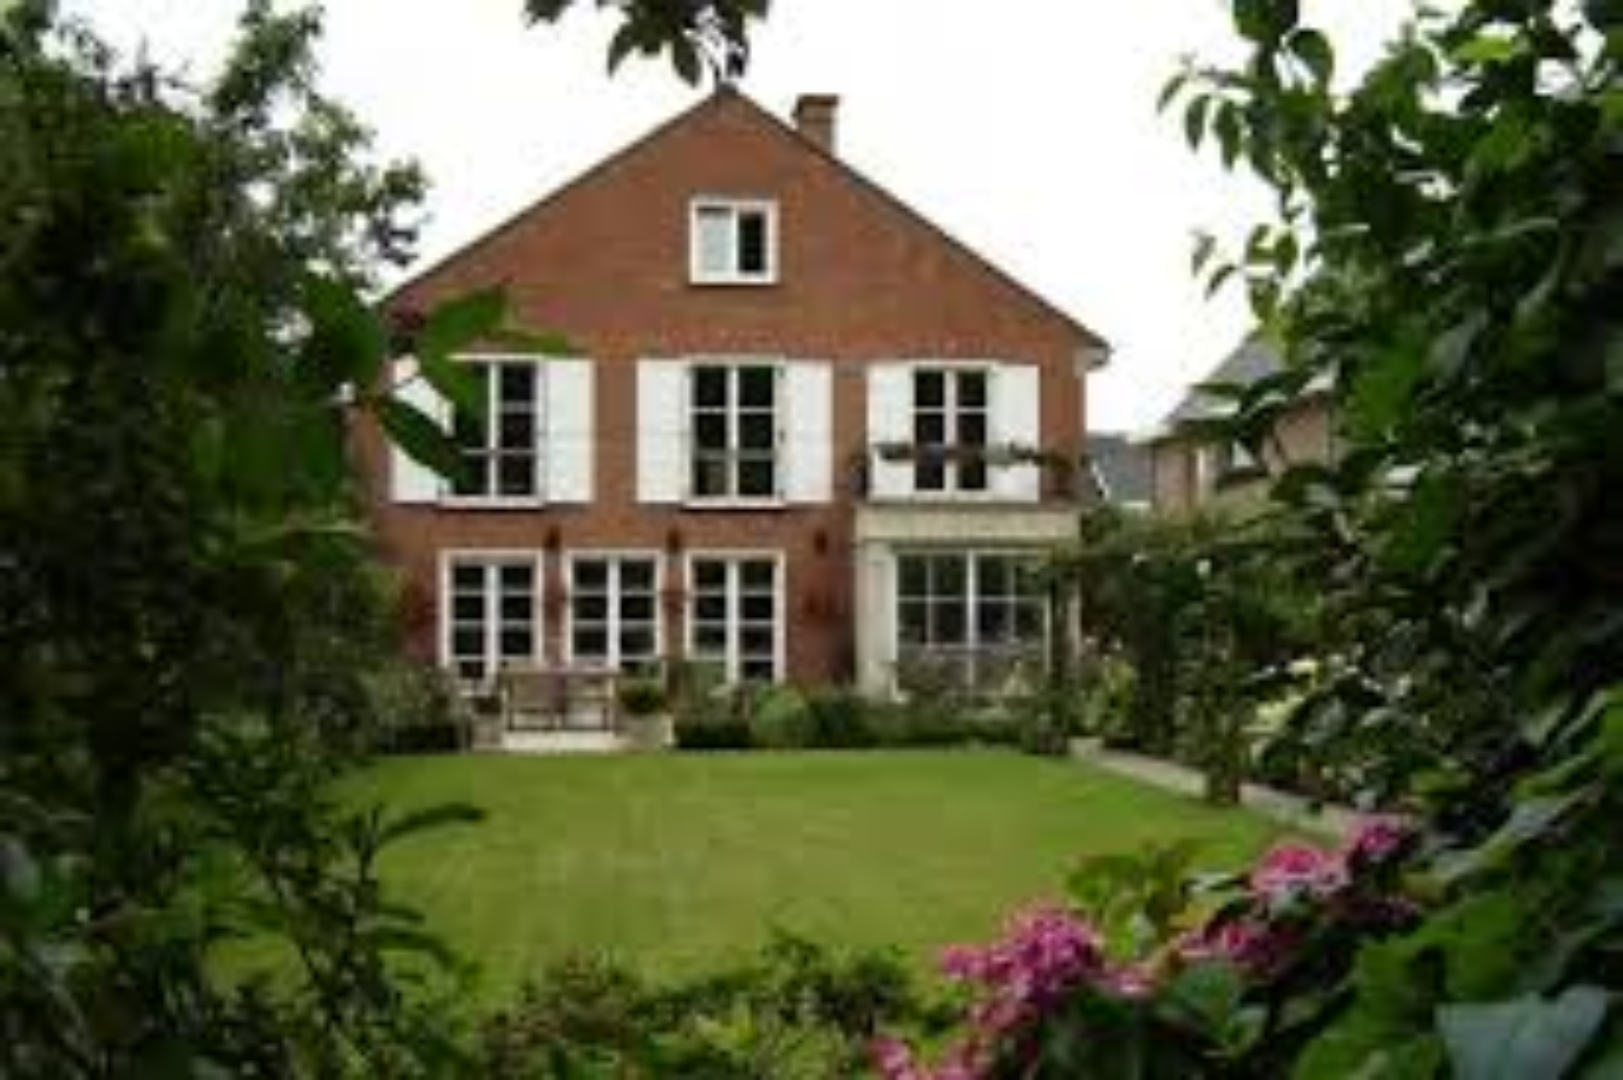 A large brick building with grass in front of a house at Brugge-man Bed and Breakfast, Chambres d'hôtes.